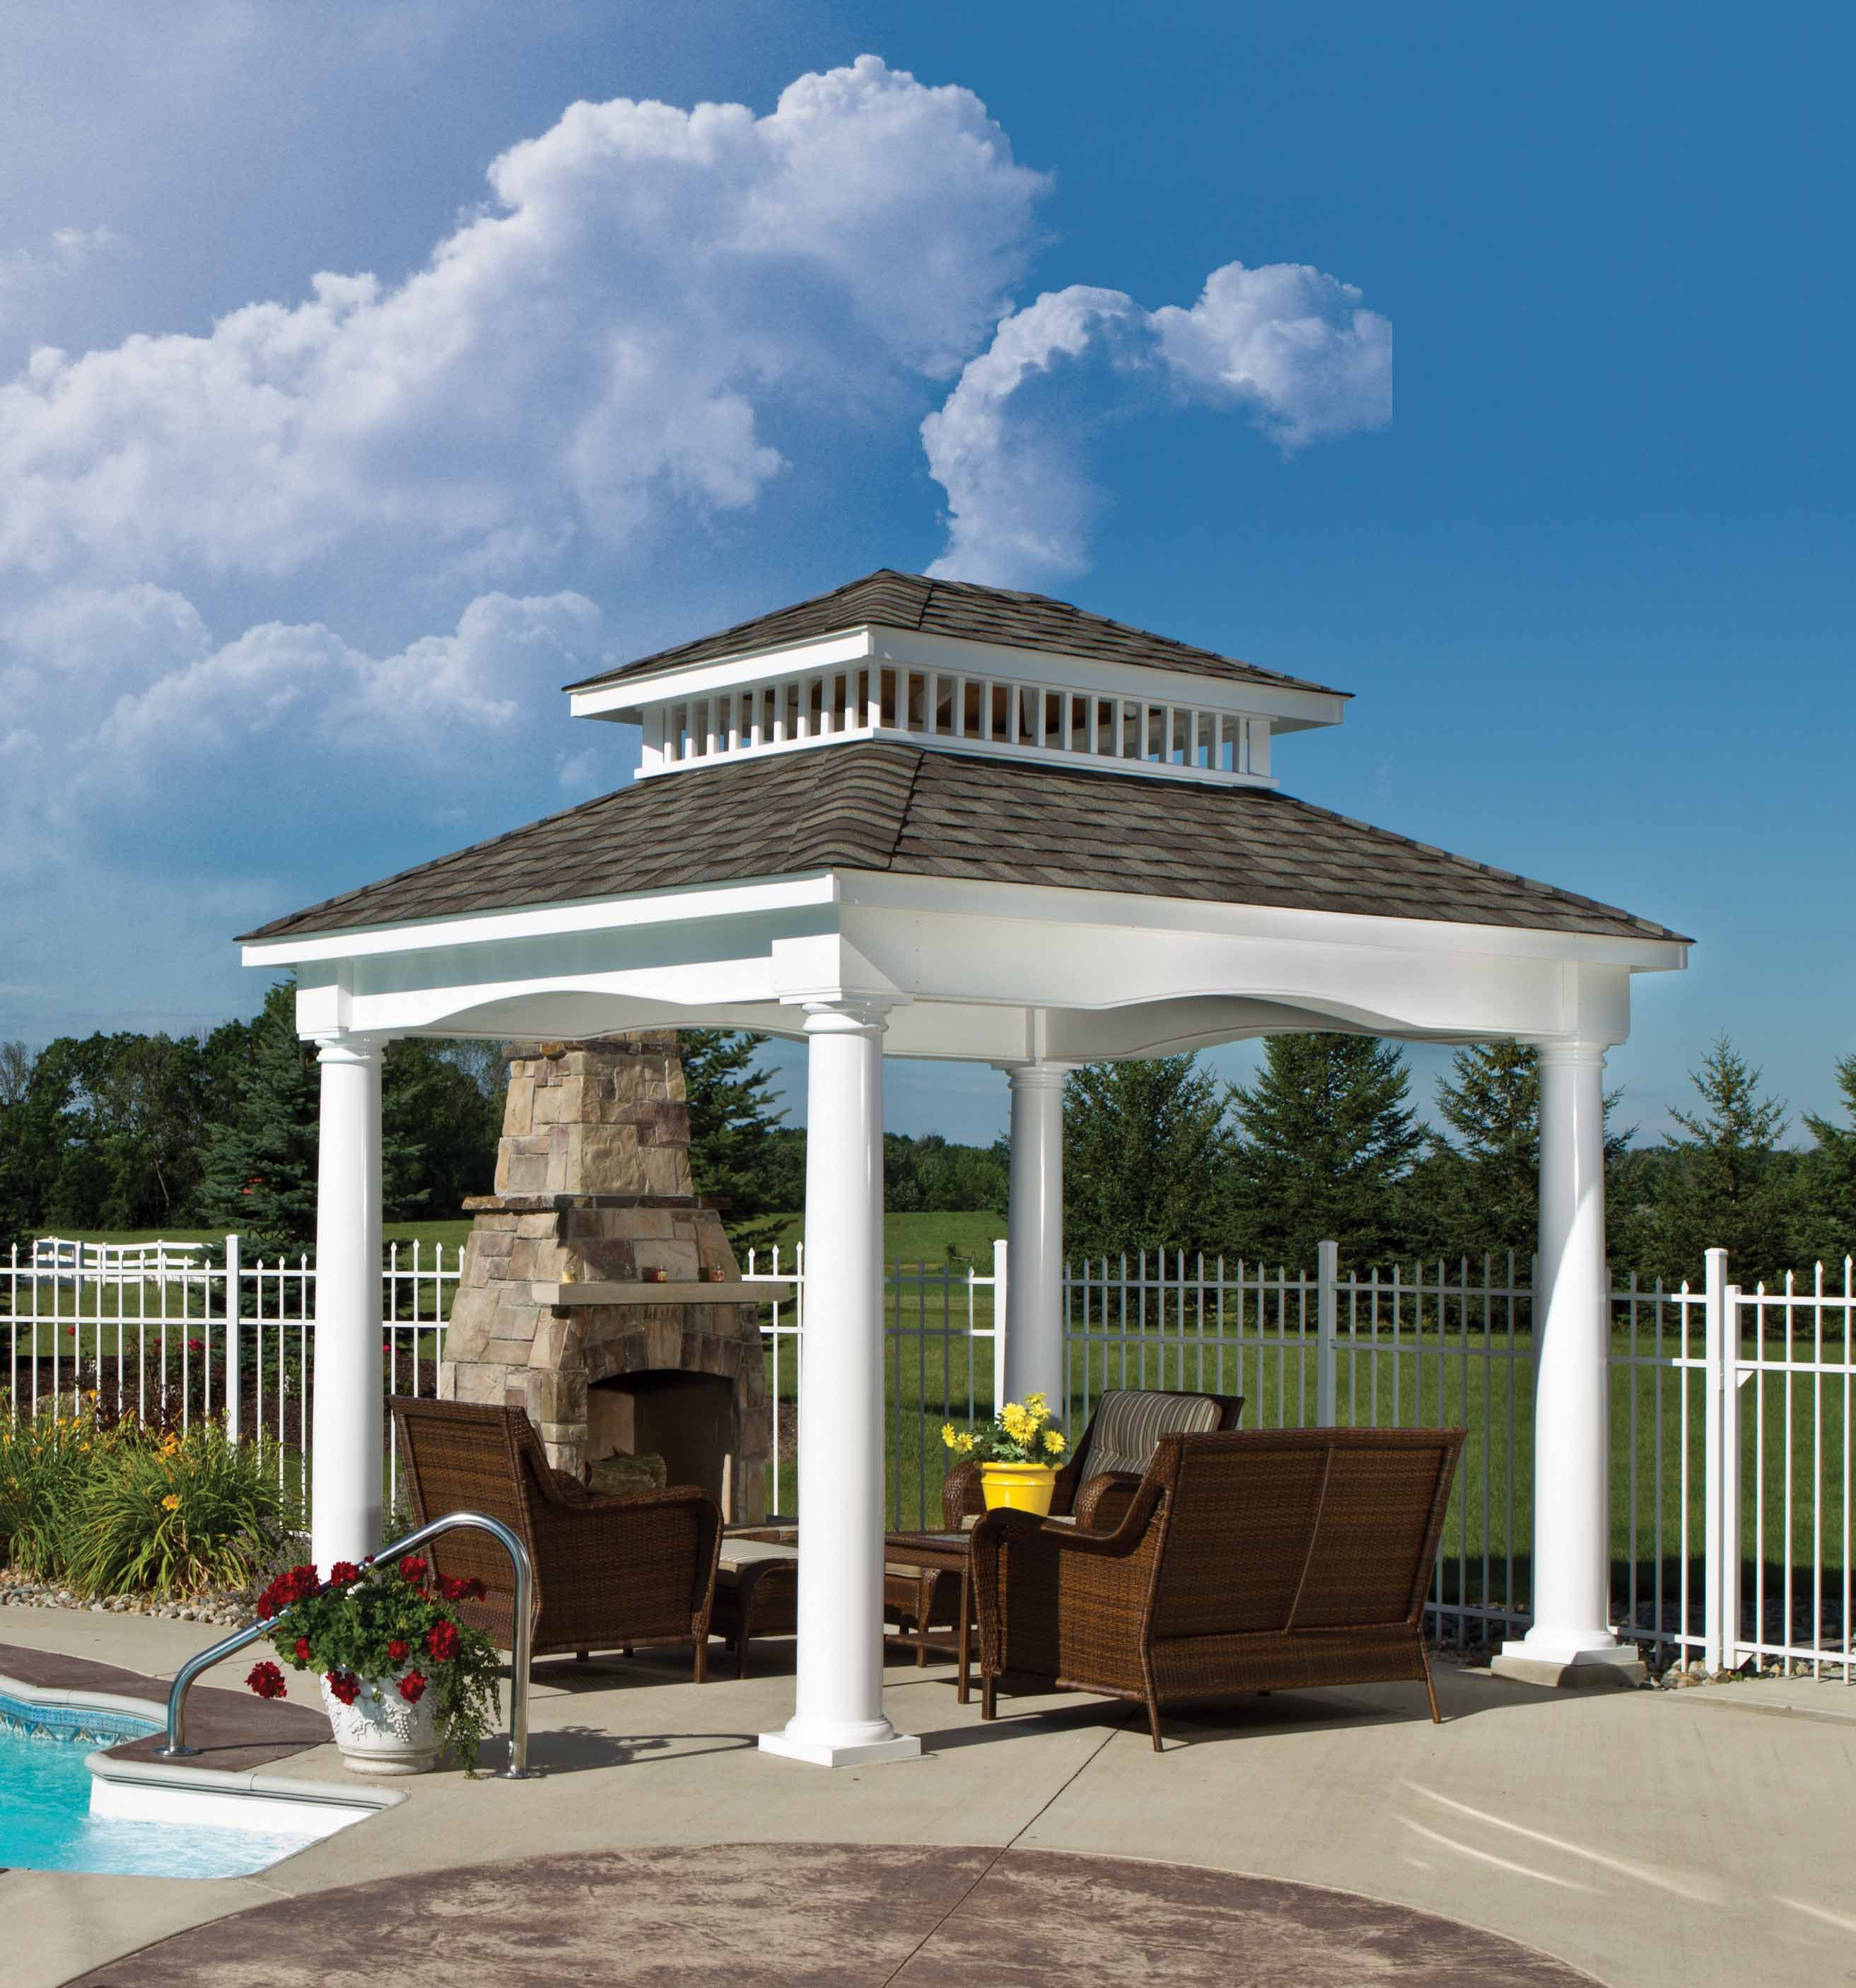 Our Victoria Pavilion In White Vinyl From Berlin Gardens Makes For A  Beautiful Outdoor Living Space